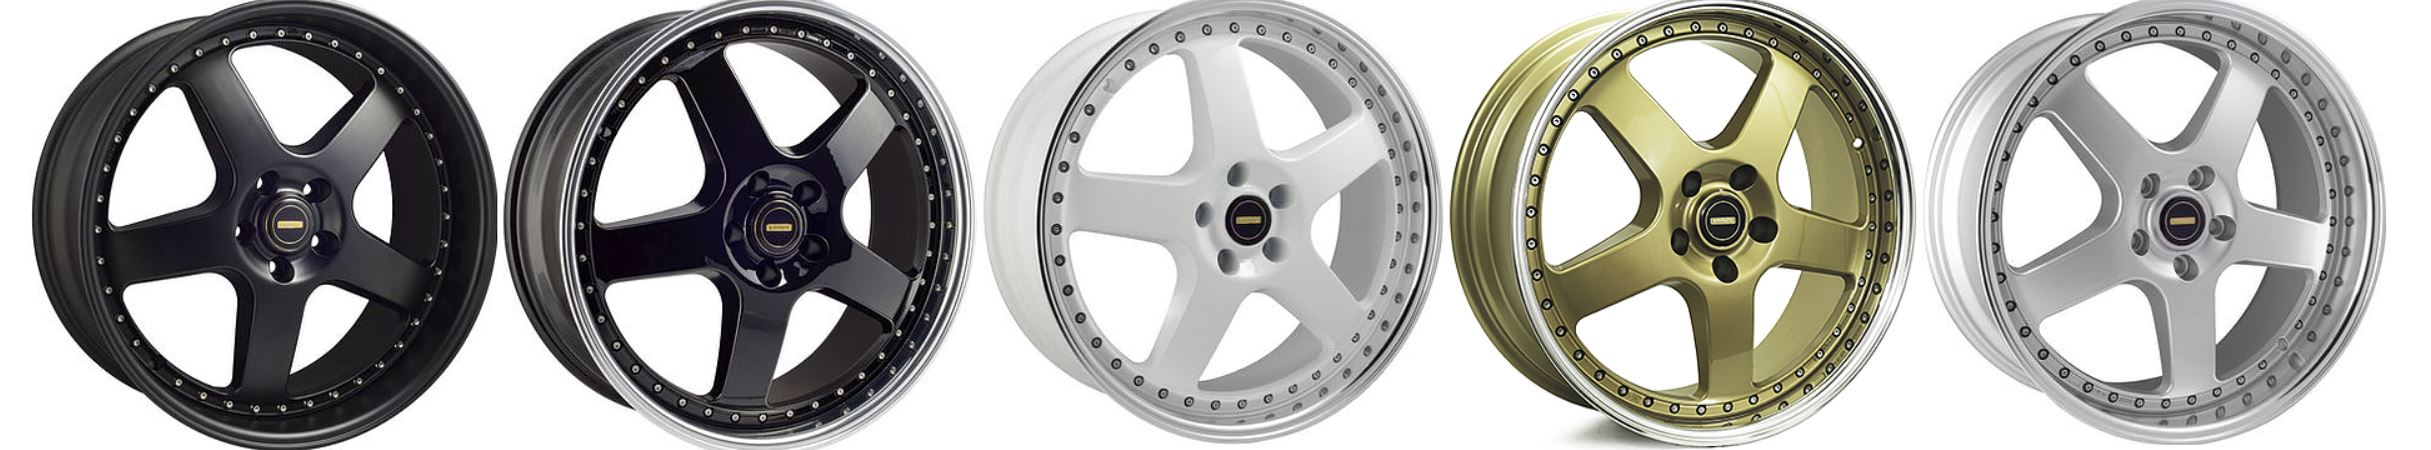 22X8.5 SIMMONS FR-1 WHEEL PACKAGE